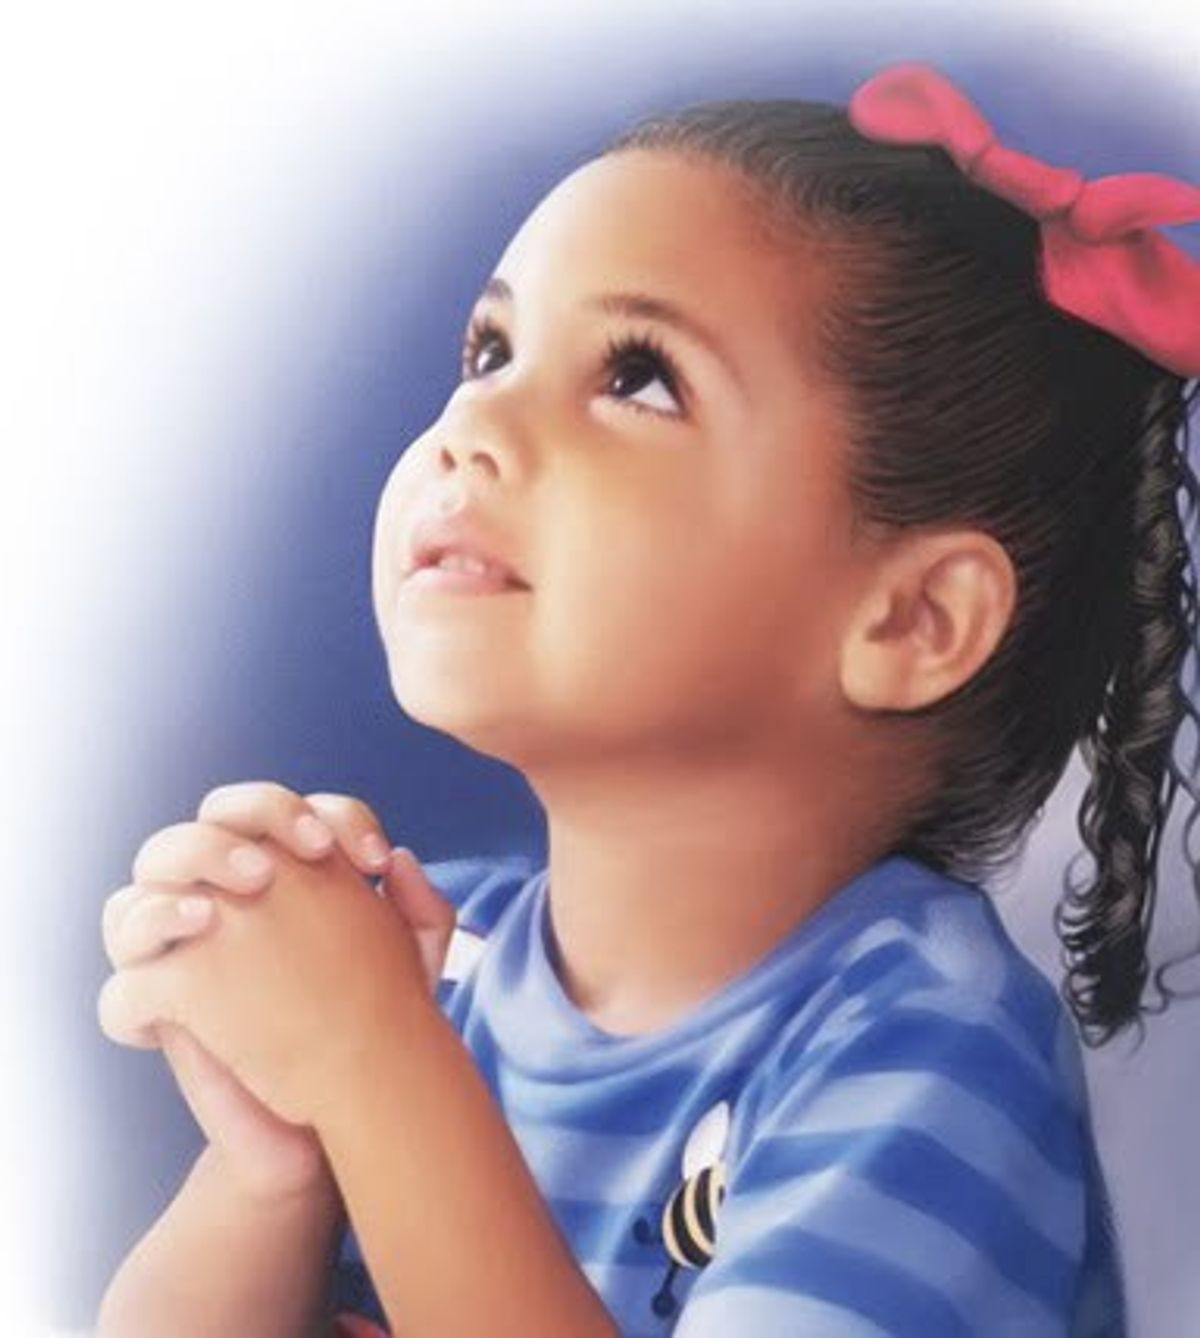 How A 7-Year-Old Taught Me About Prayer